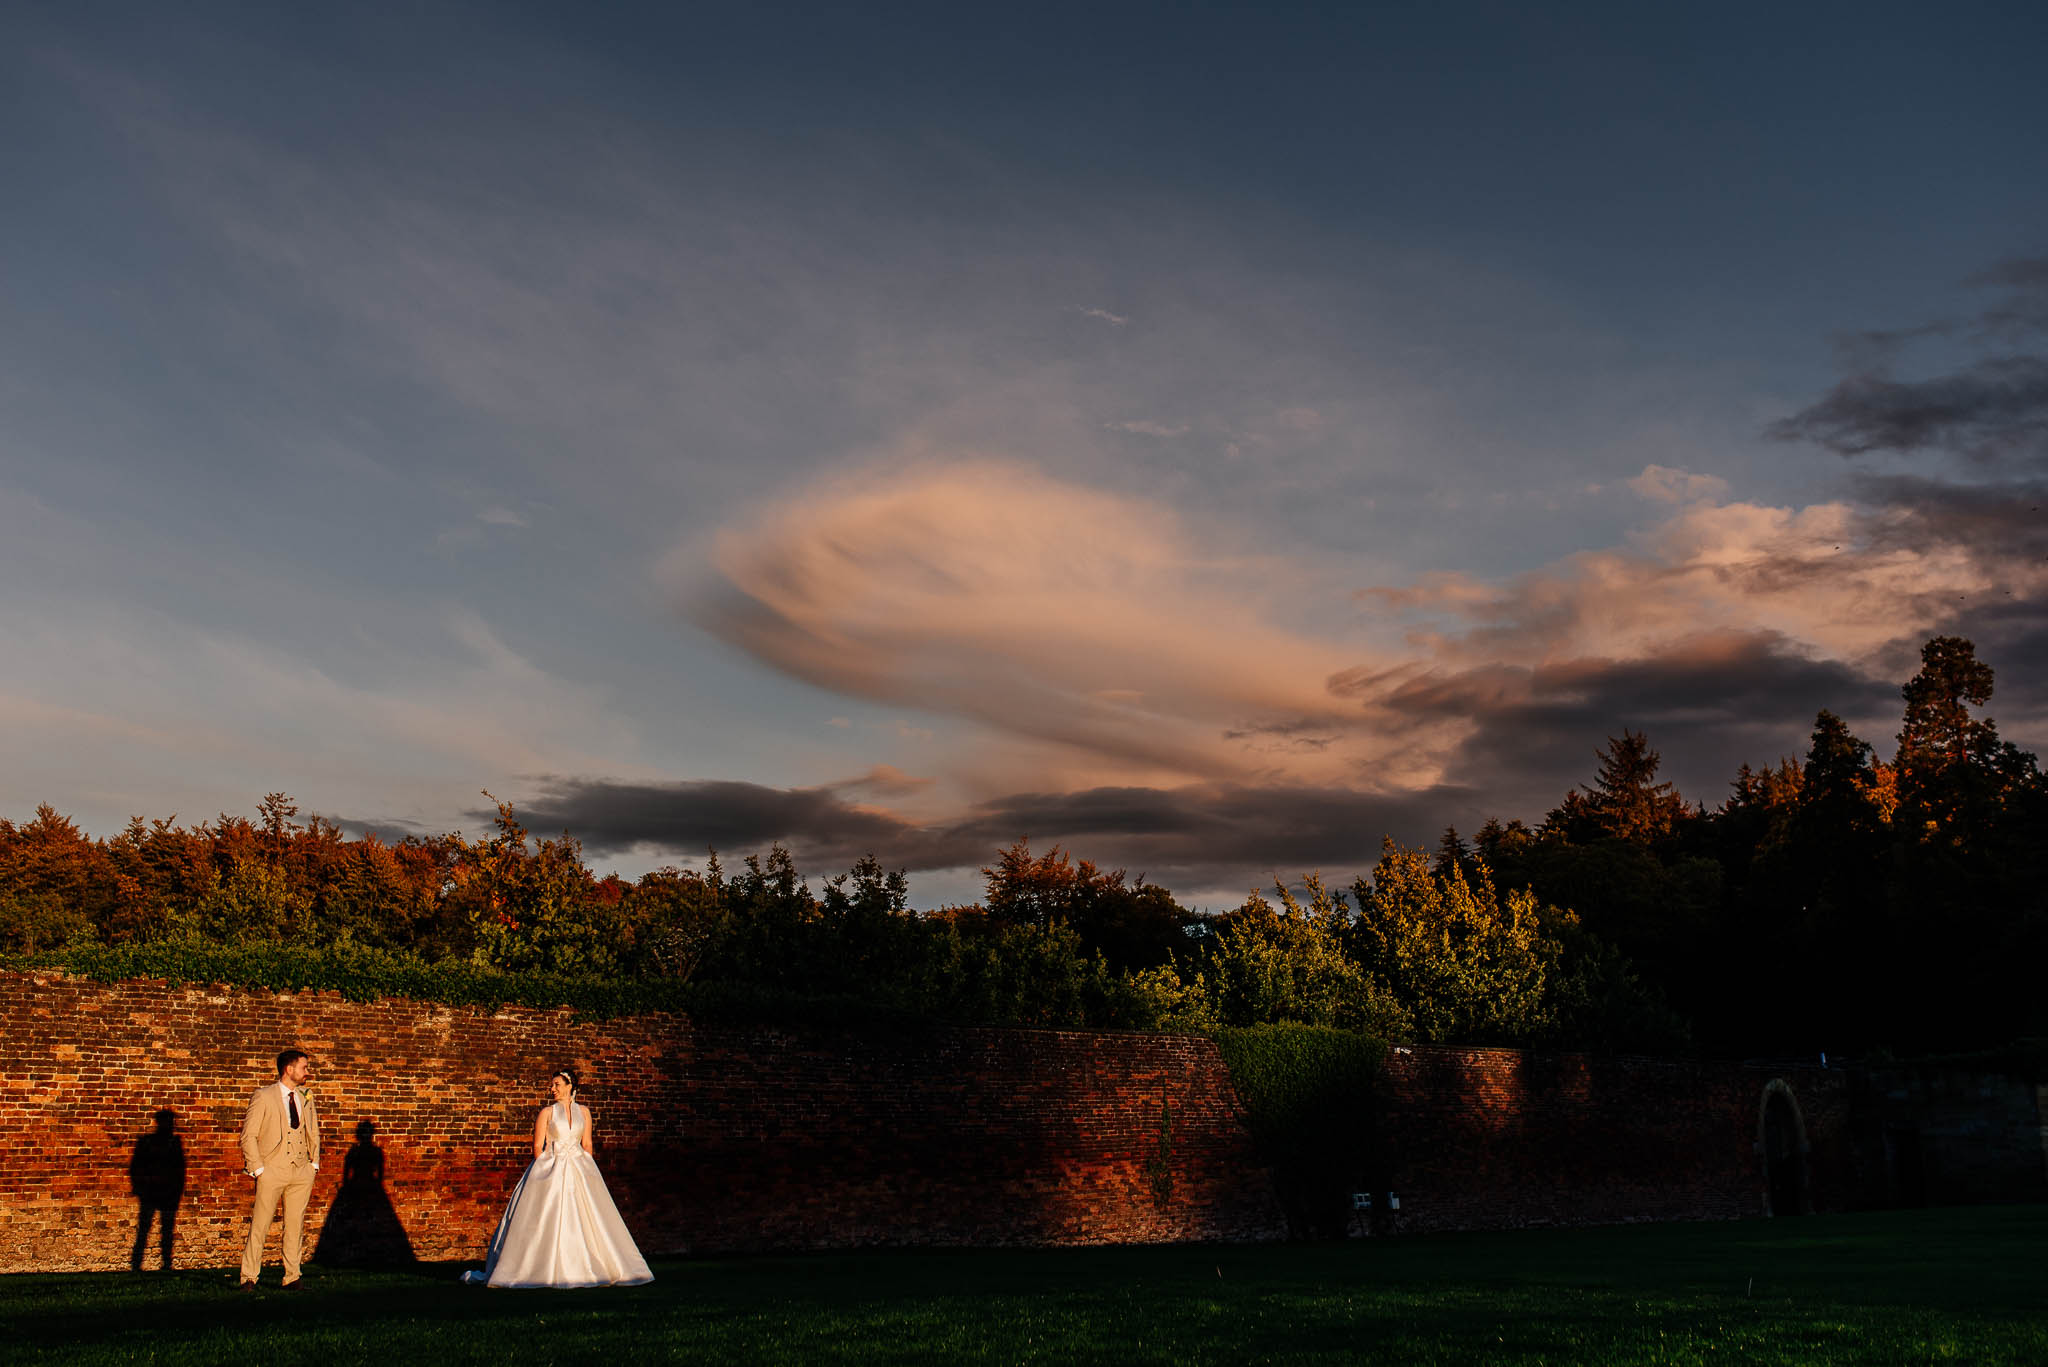 Sunset at Alnwick garden - bride and groom